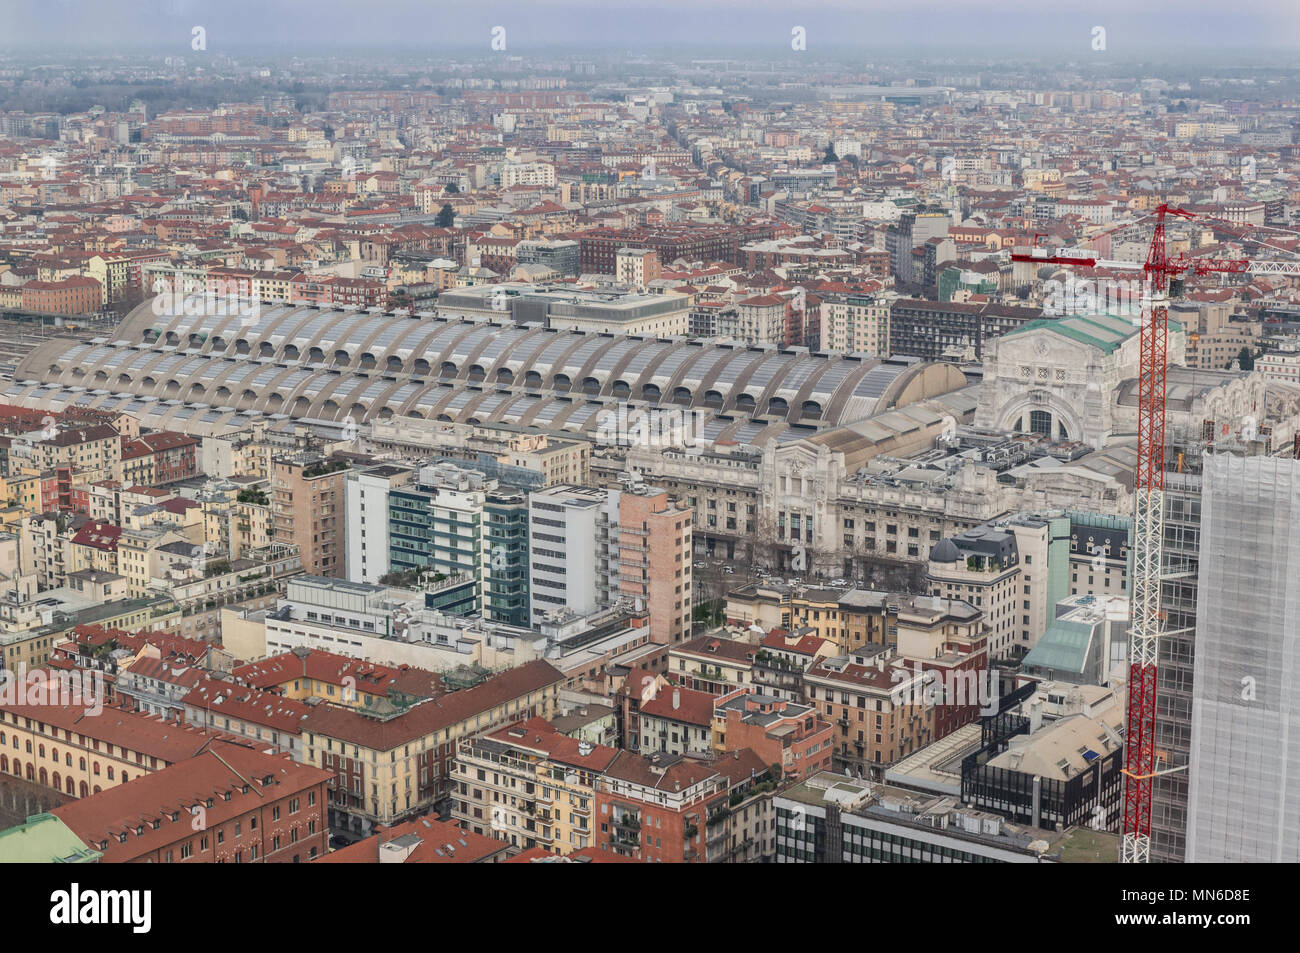 panoramic view of the Central Station from the terrace of a skyscraper, Milan Italy - Stock Image